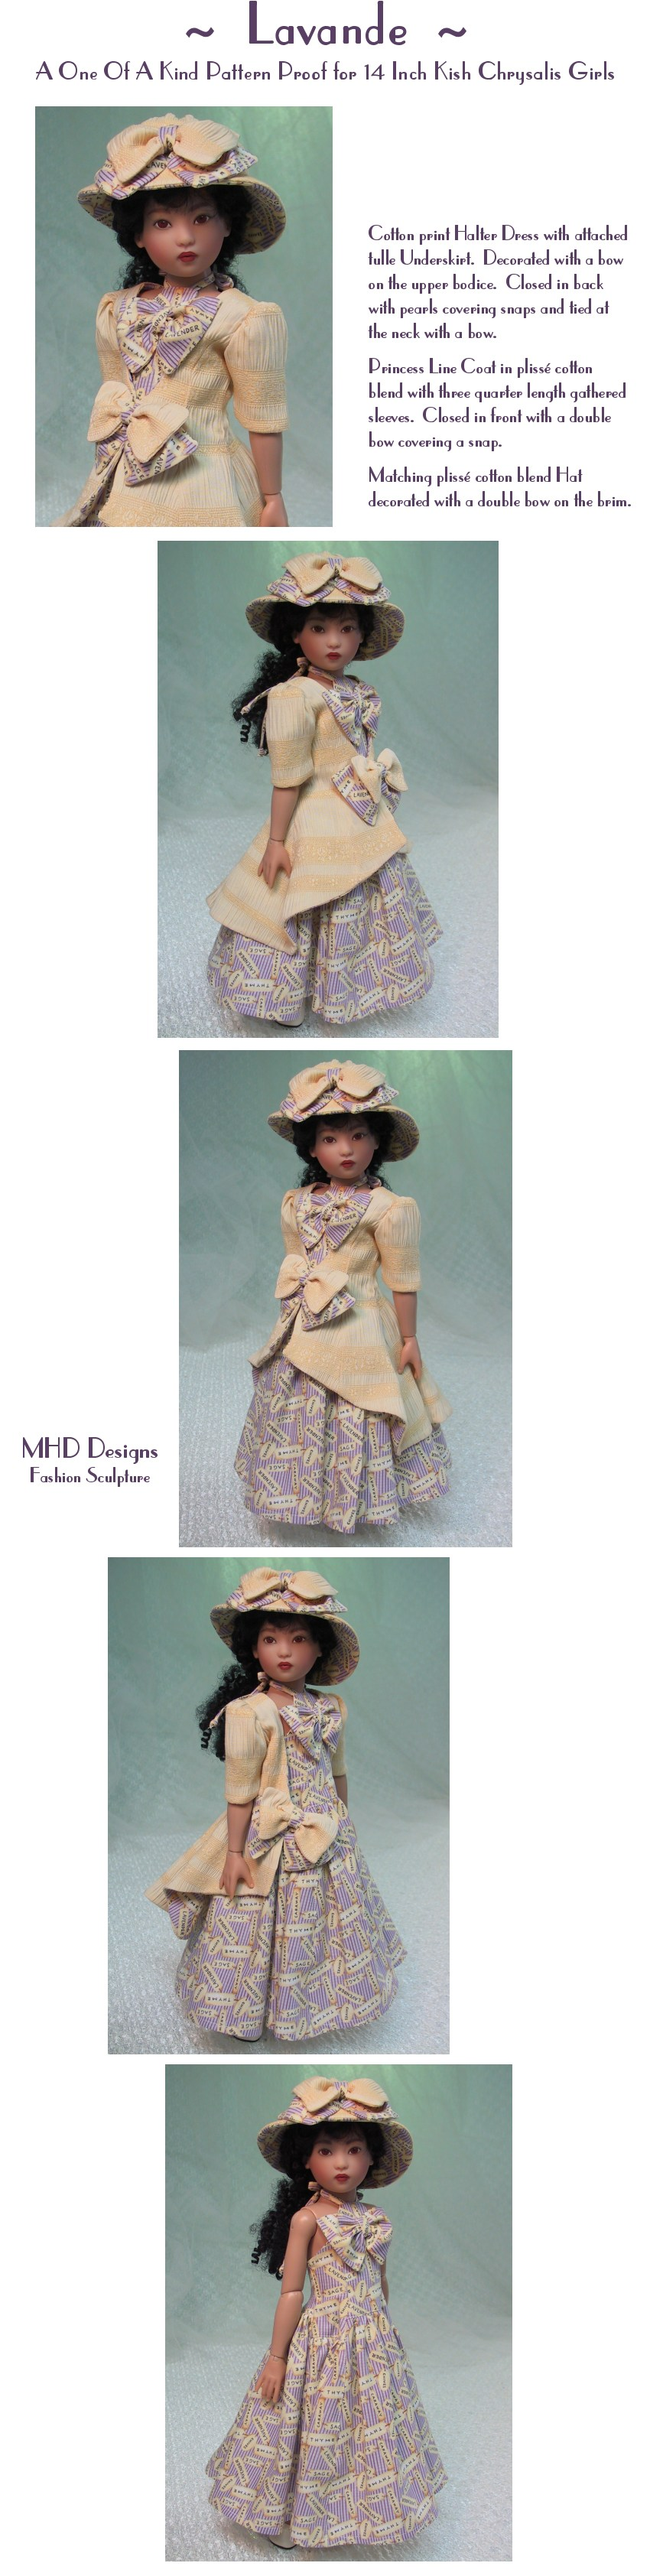 Lavander  - a One Of A Kind Pattern Proof by MHD Designs - High Resolution Photographs, your patience is appreciated!